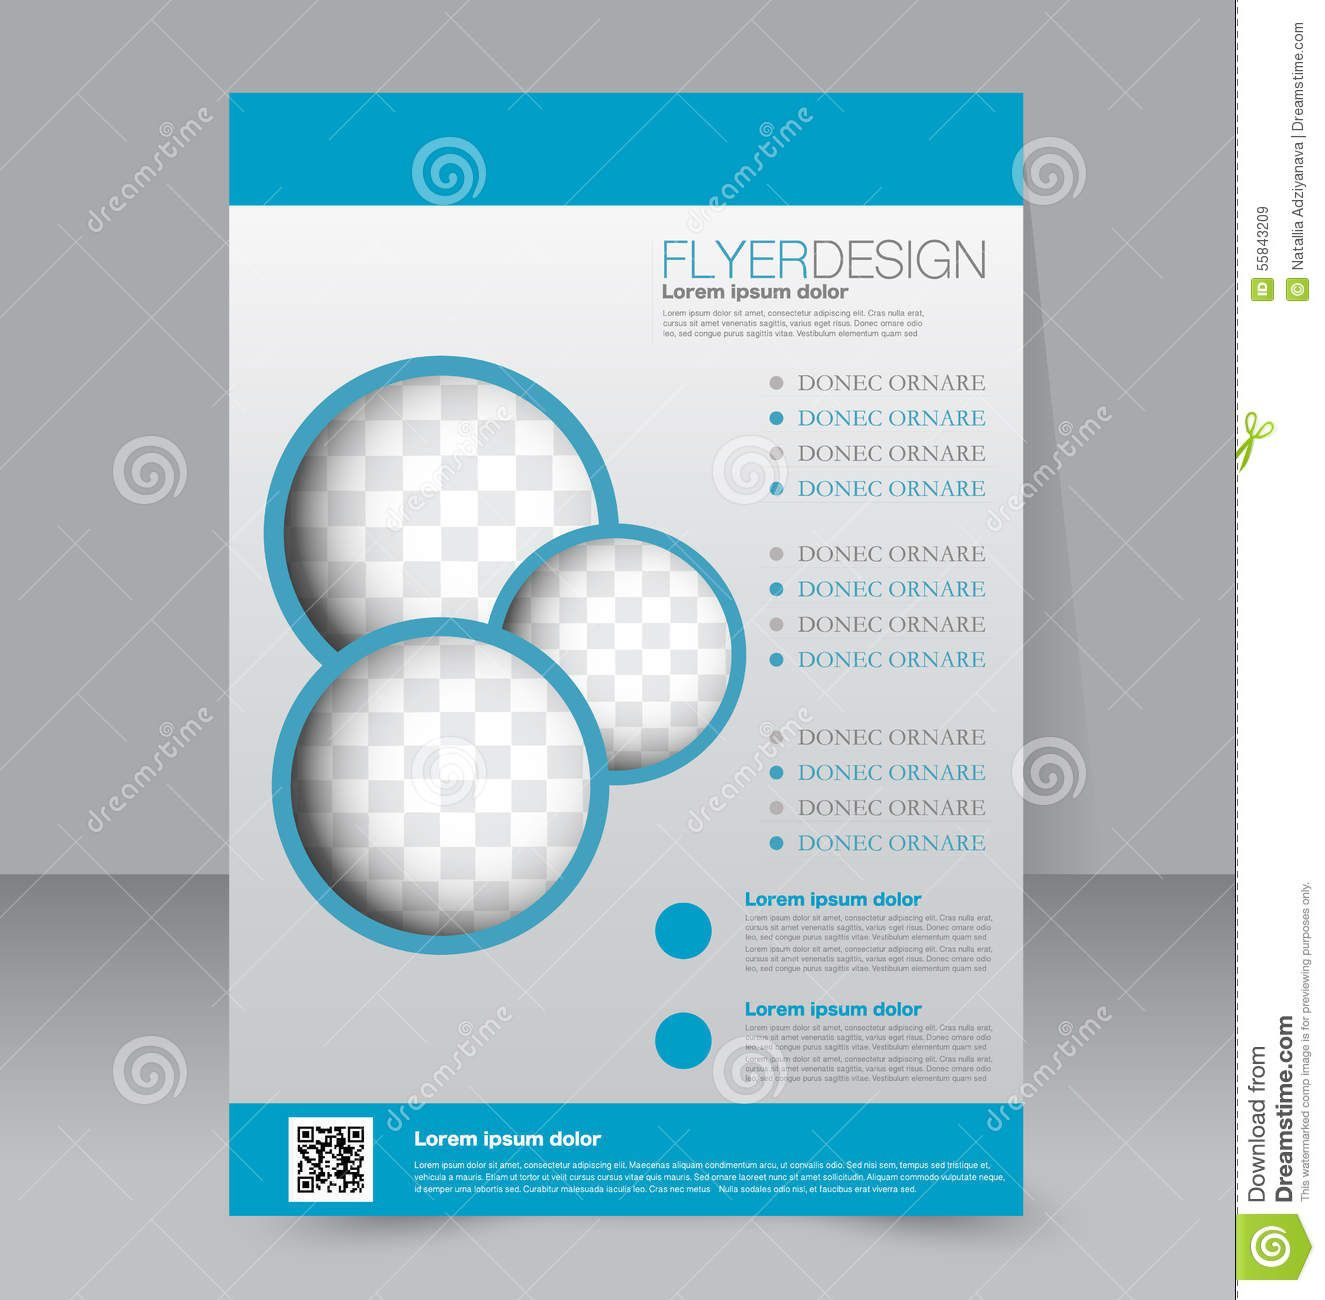 005 Top Busines Flyer Template Free Download Example  Psd DesignFull